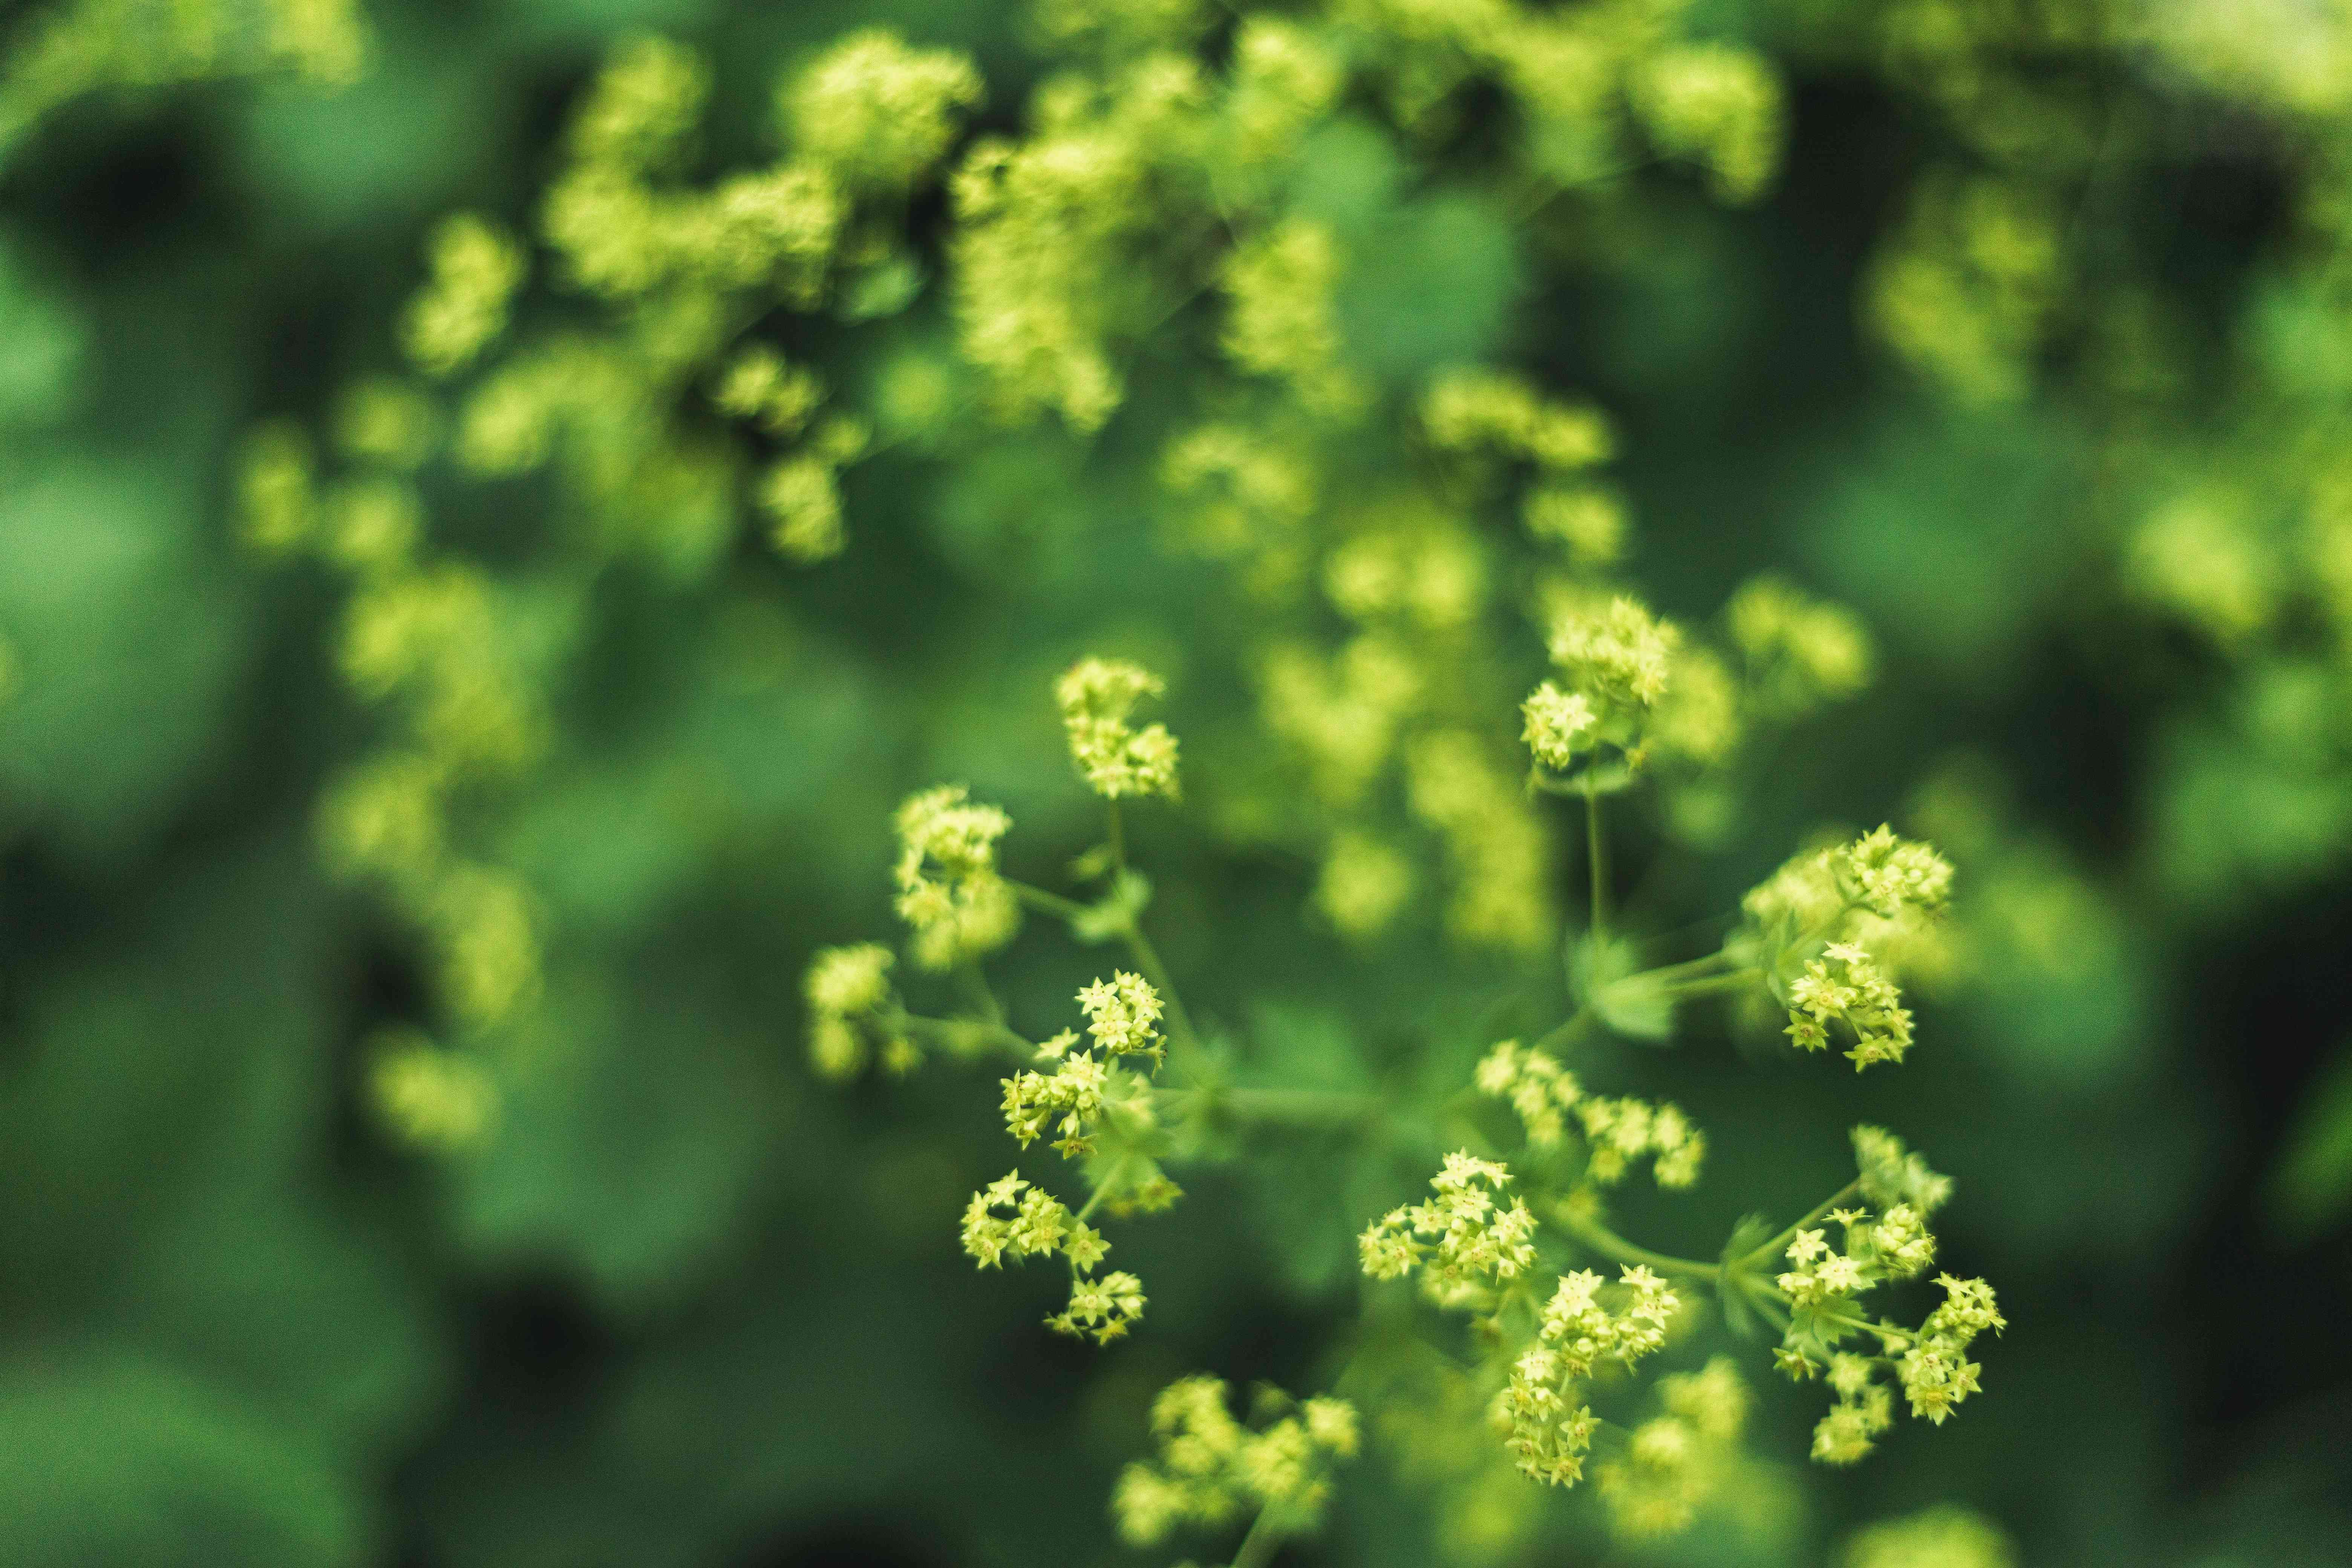 flowers on lady's mantle